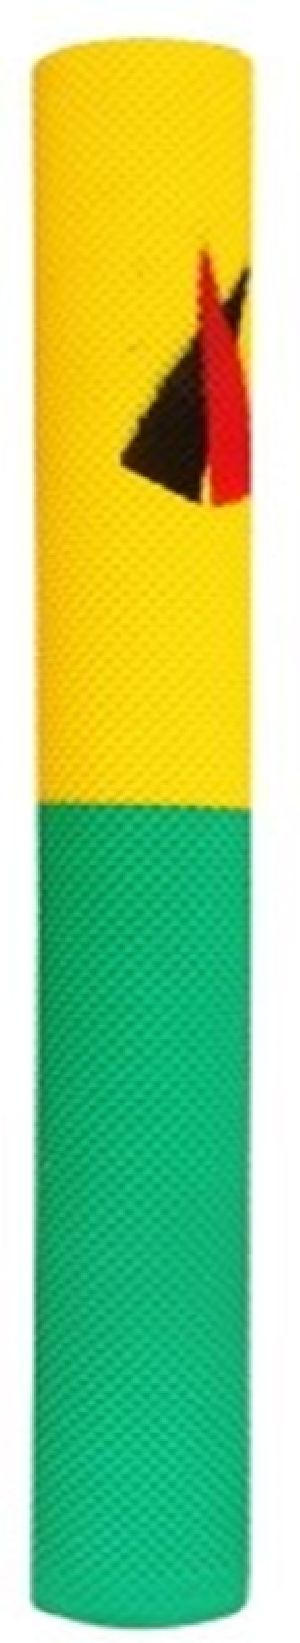 GACR-095 Multi Colour Bat Grip (Full Diamond)